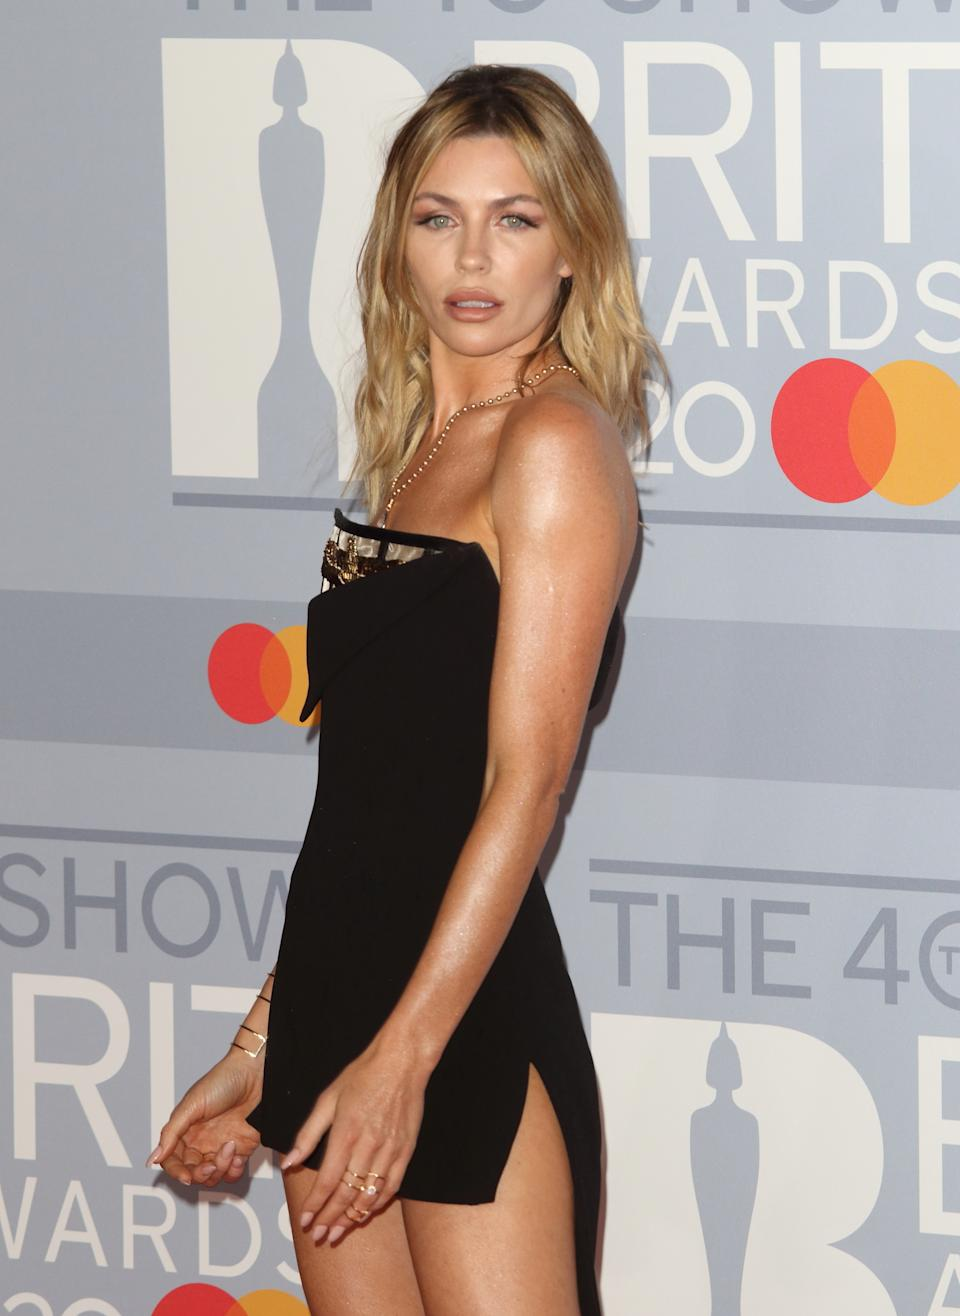 Abbey Clancy attends the 40th Brit Awards Red Carpet arrivals at The O2 Arena in London. (Photo by Keith Mayhew / SOPA Images/Sipa USA)